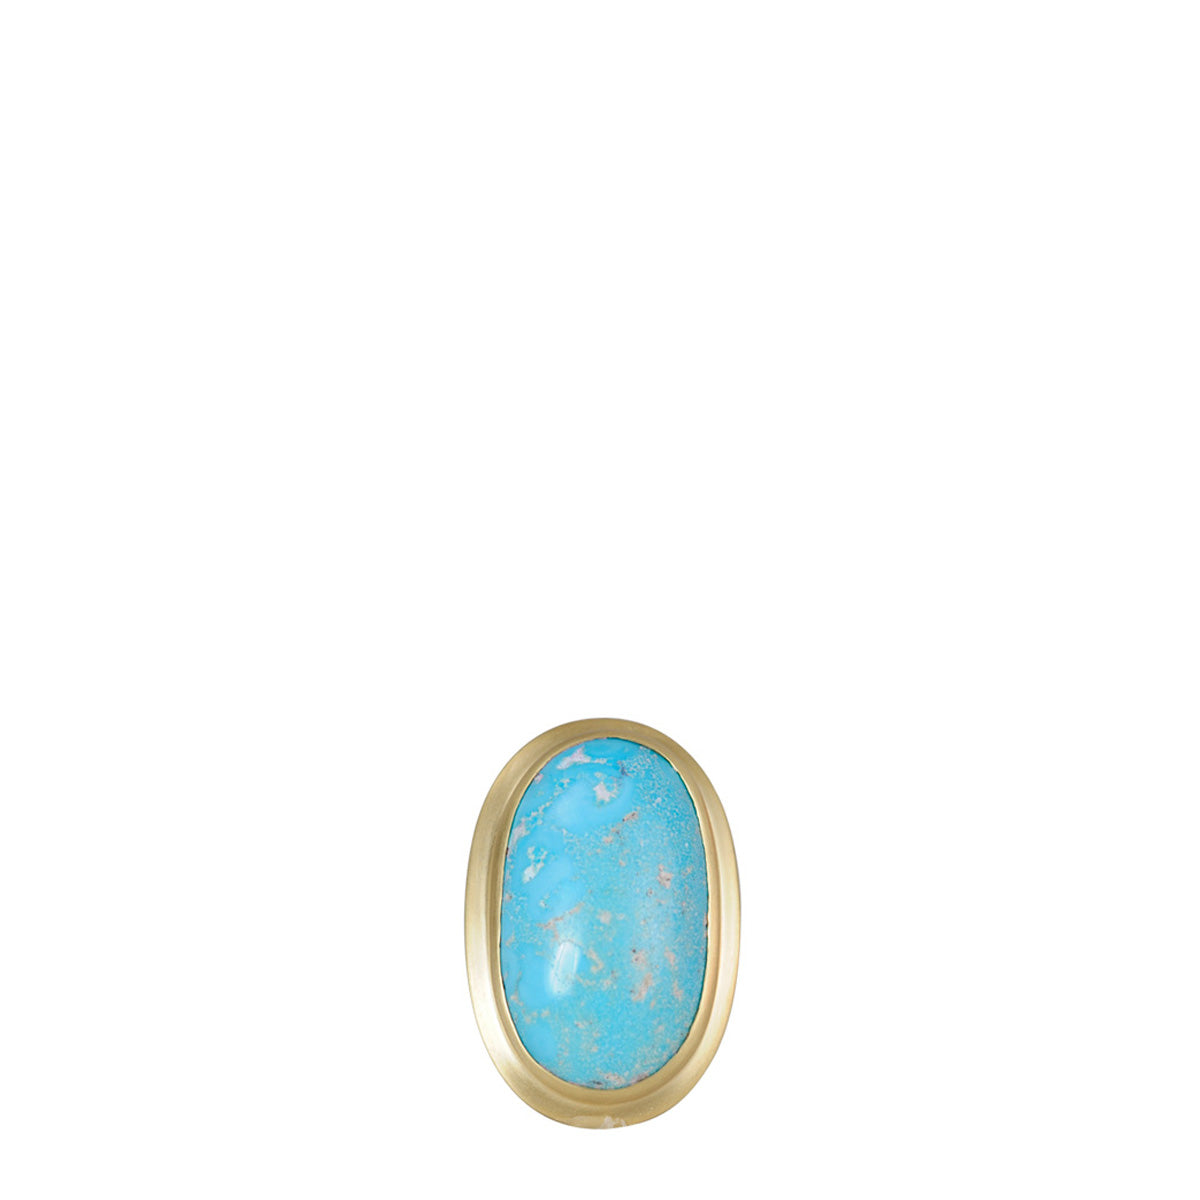 18K Gold Medium Oval Persian Turquoise Ring